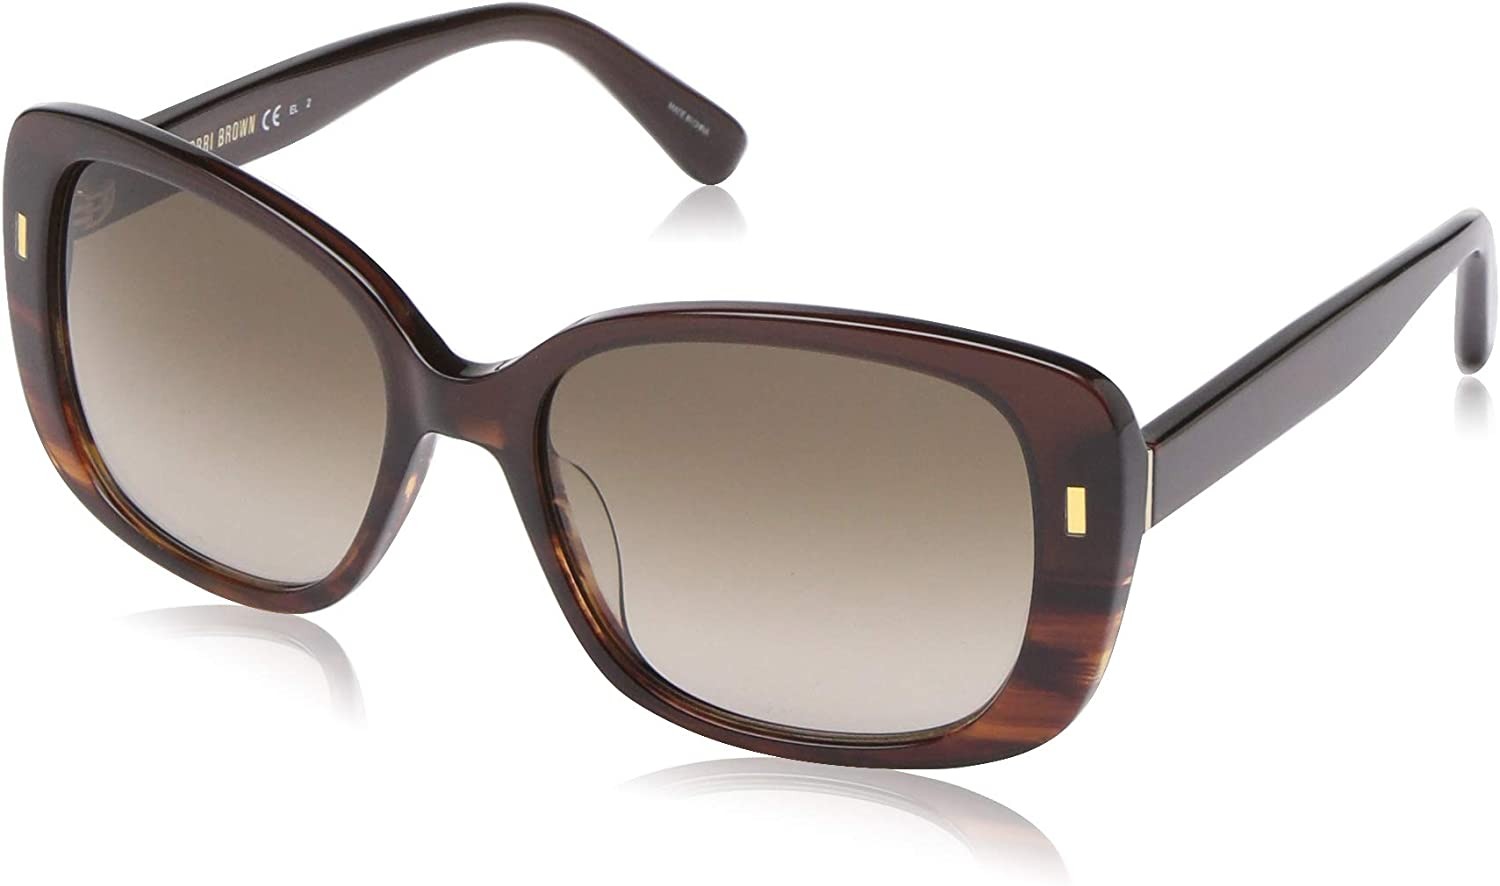 Bobbi Brown Women's The Audrey s Square Sunglasses, BRW HAVAN, 53 mm